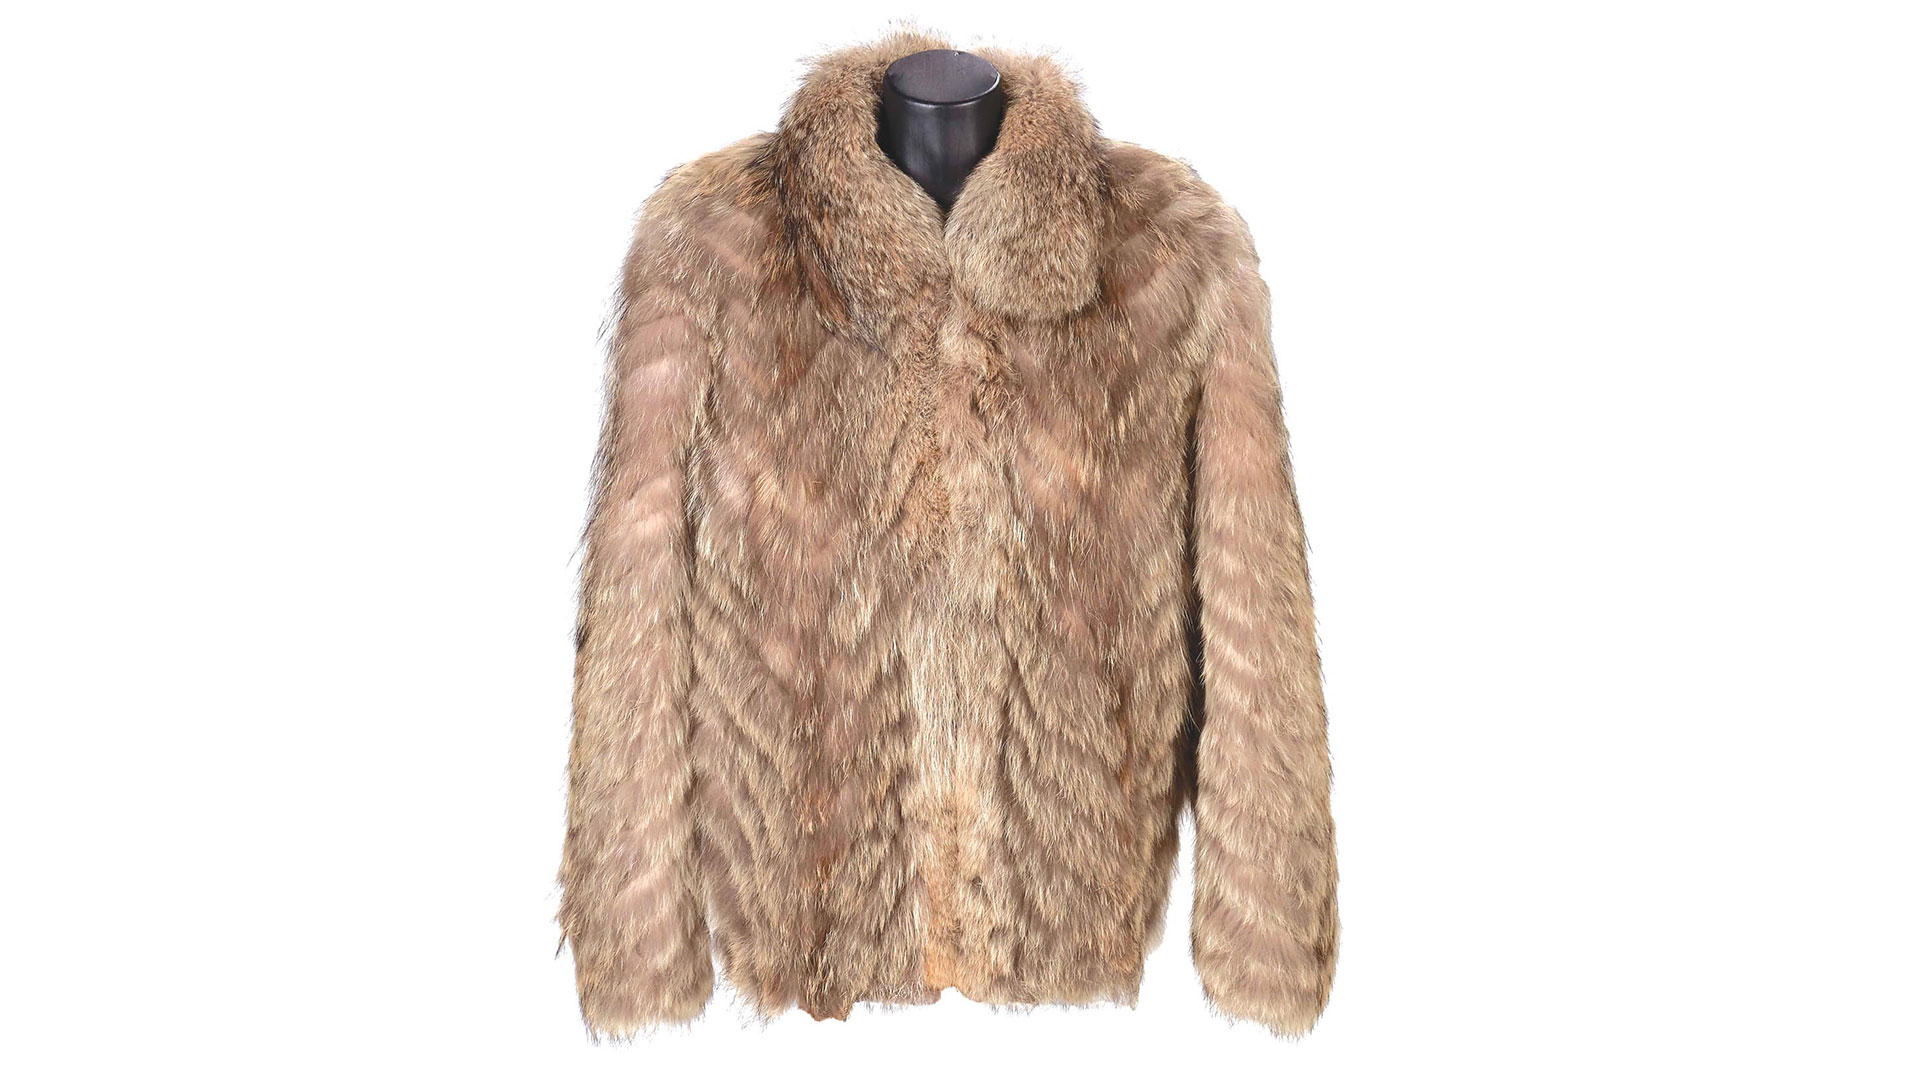 Joe Namath Fur Coat Auction